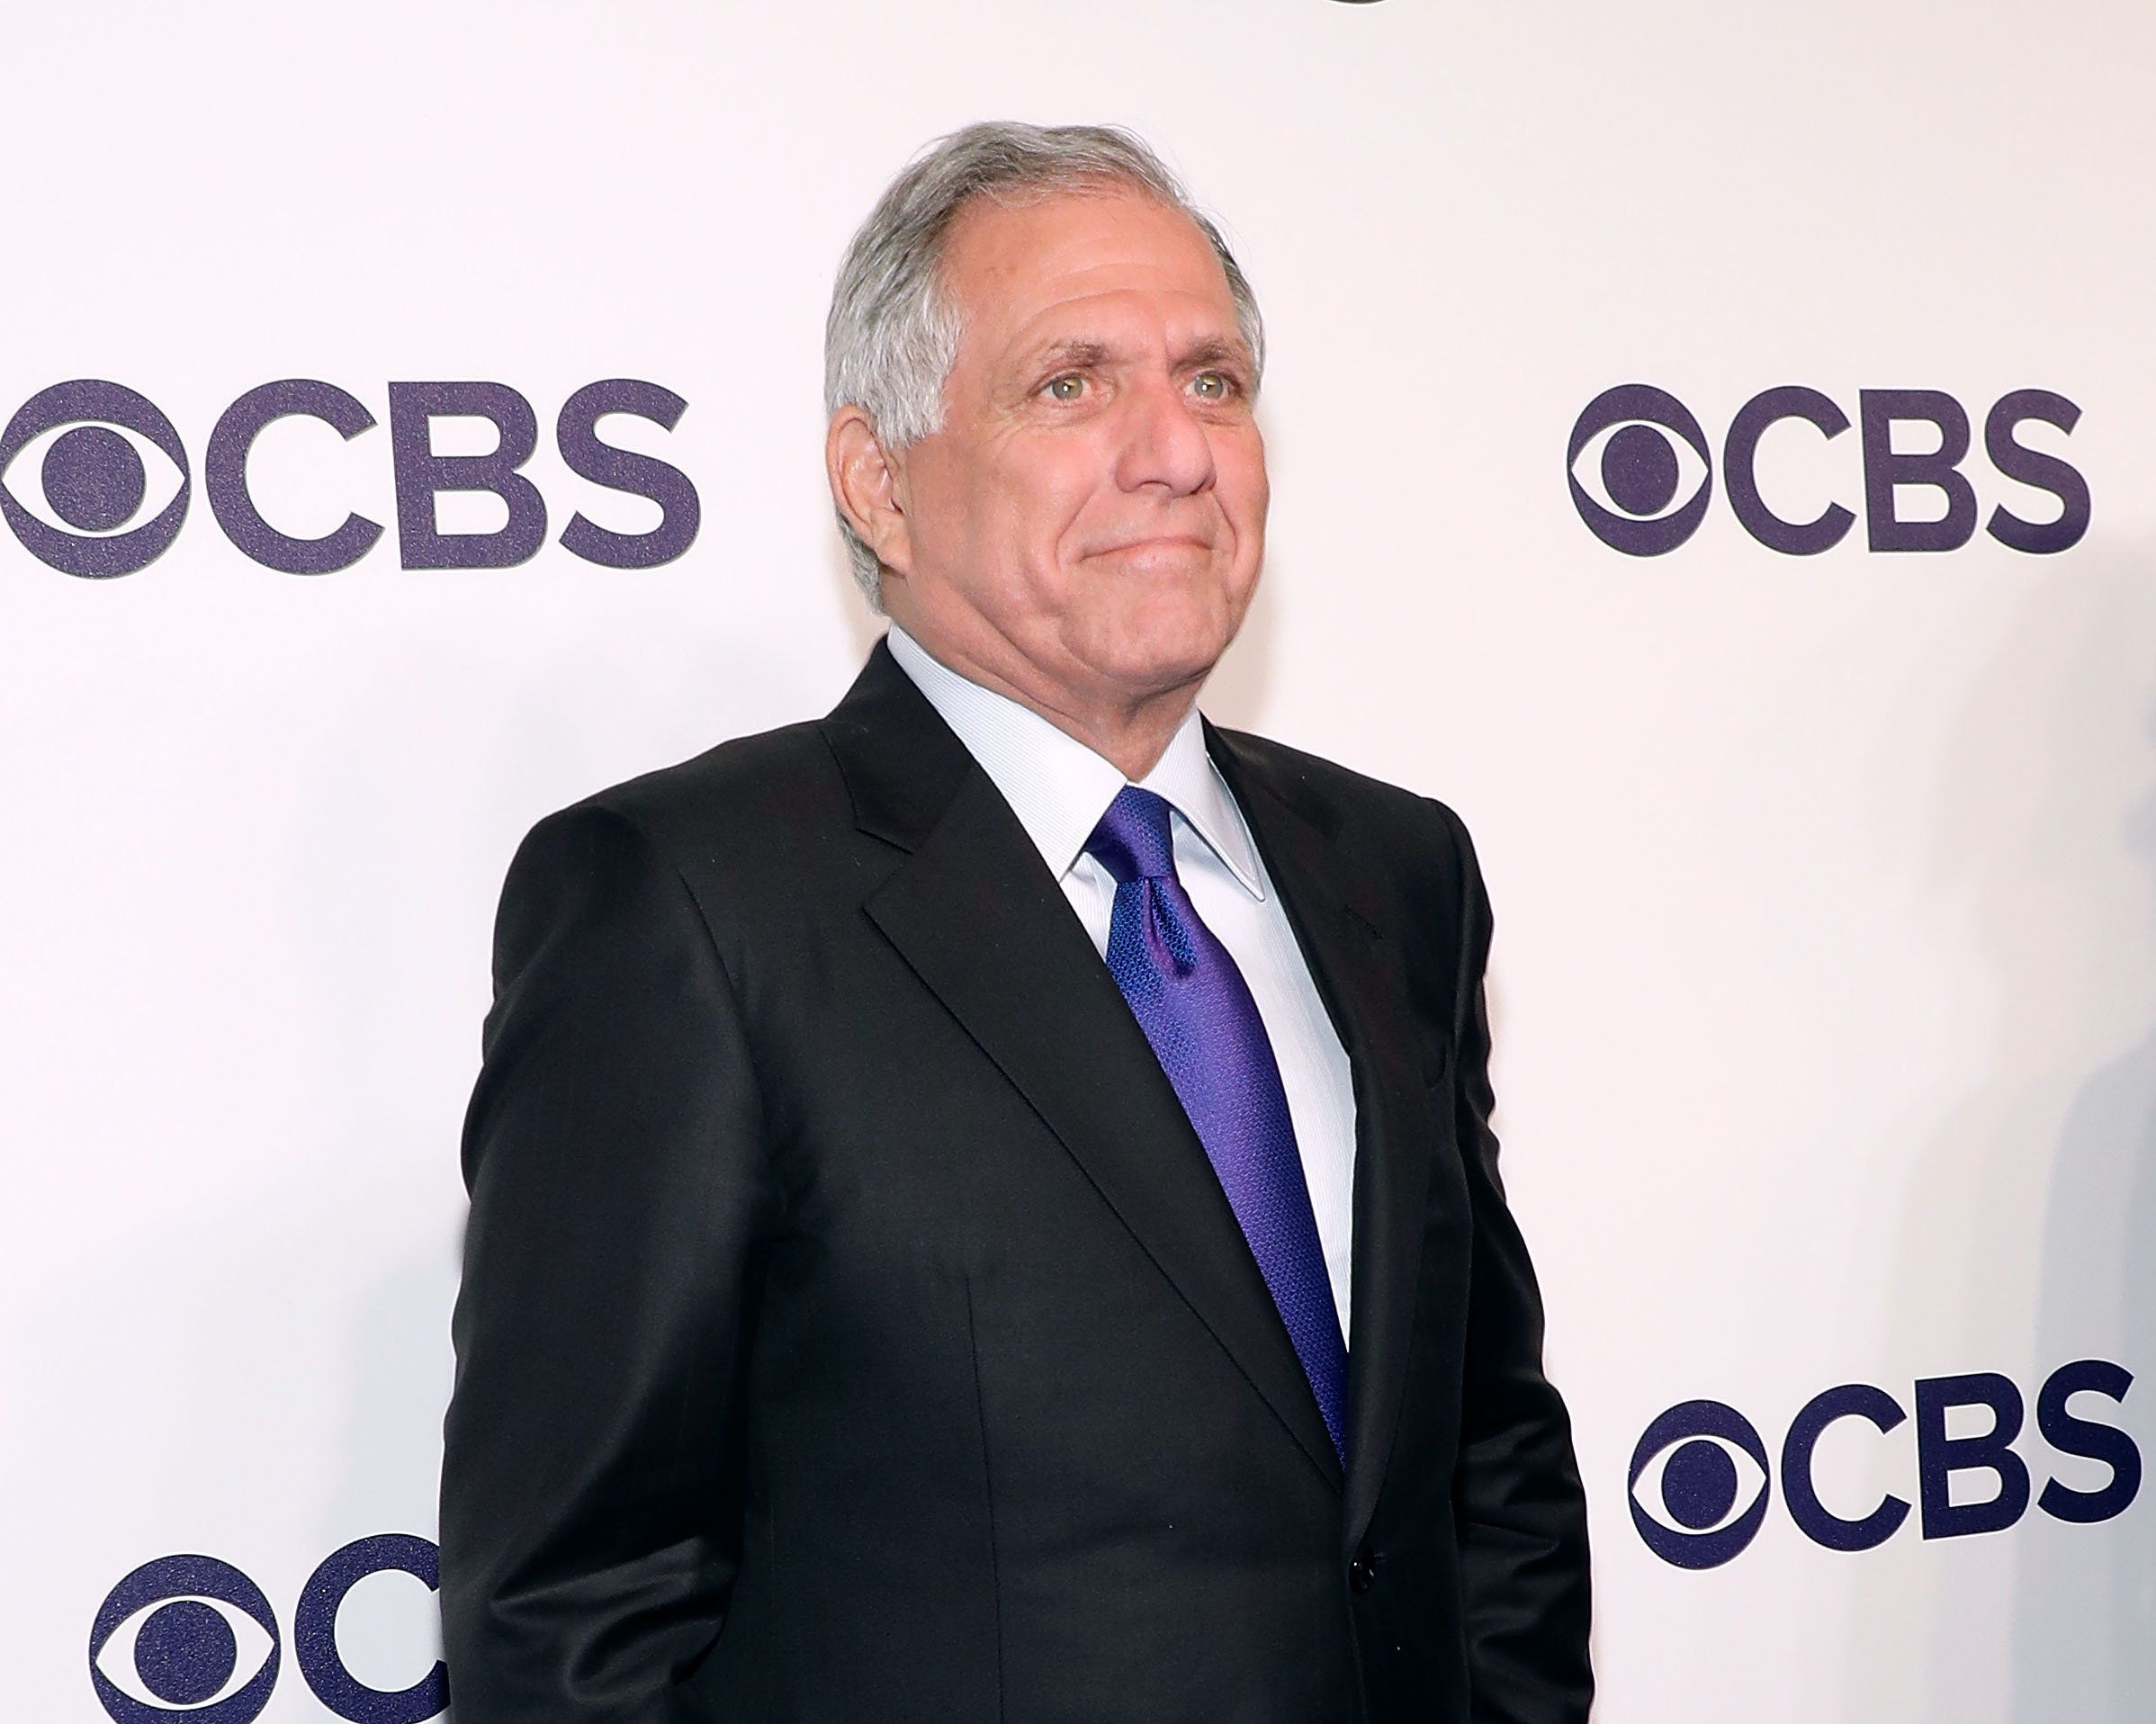 NEW YORK, NY - MAY 17:  Les Moonves attends the 2017 CBS Upfront at The Plaza Hotel on May 17, 2017 in New York City.  (Photo by Taylor Hill/FilmMagic)